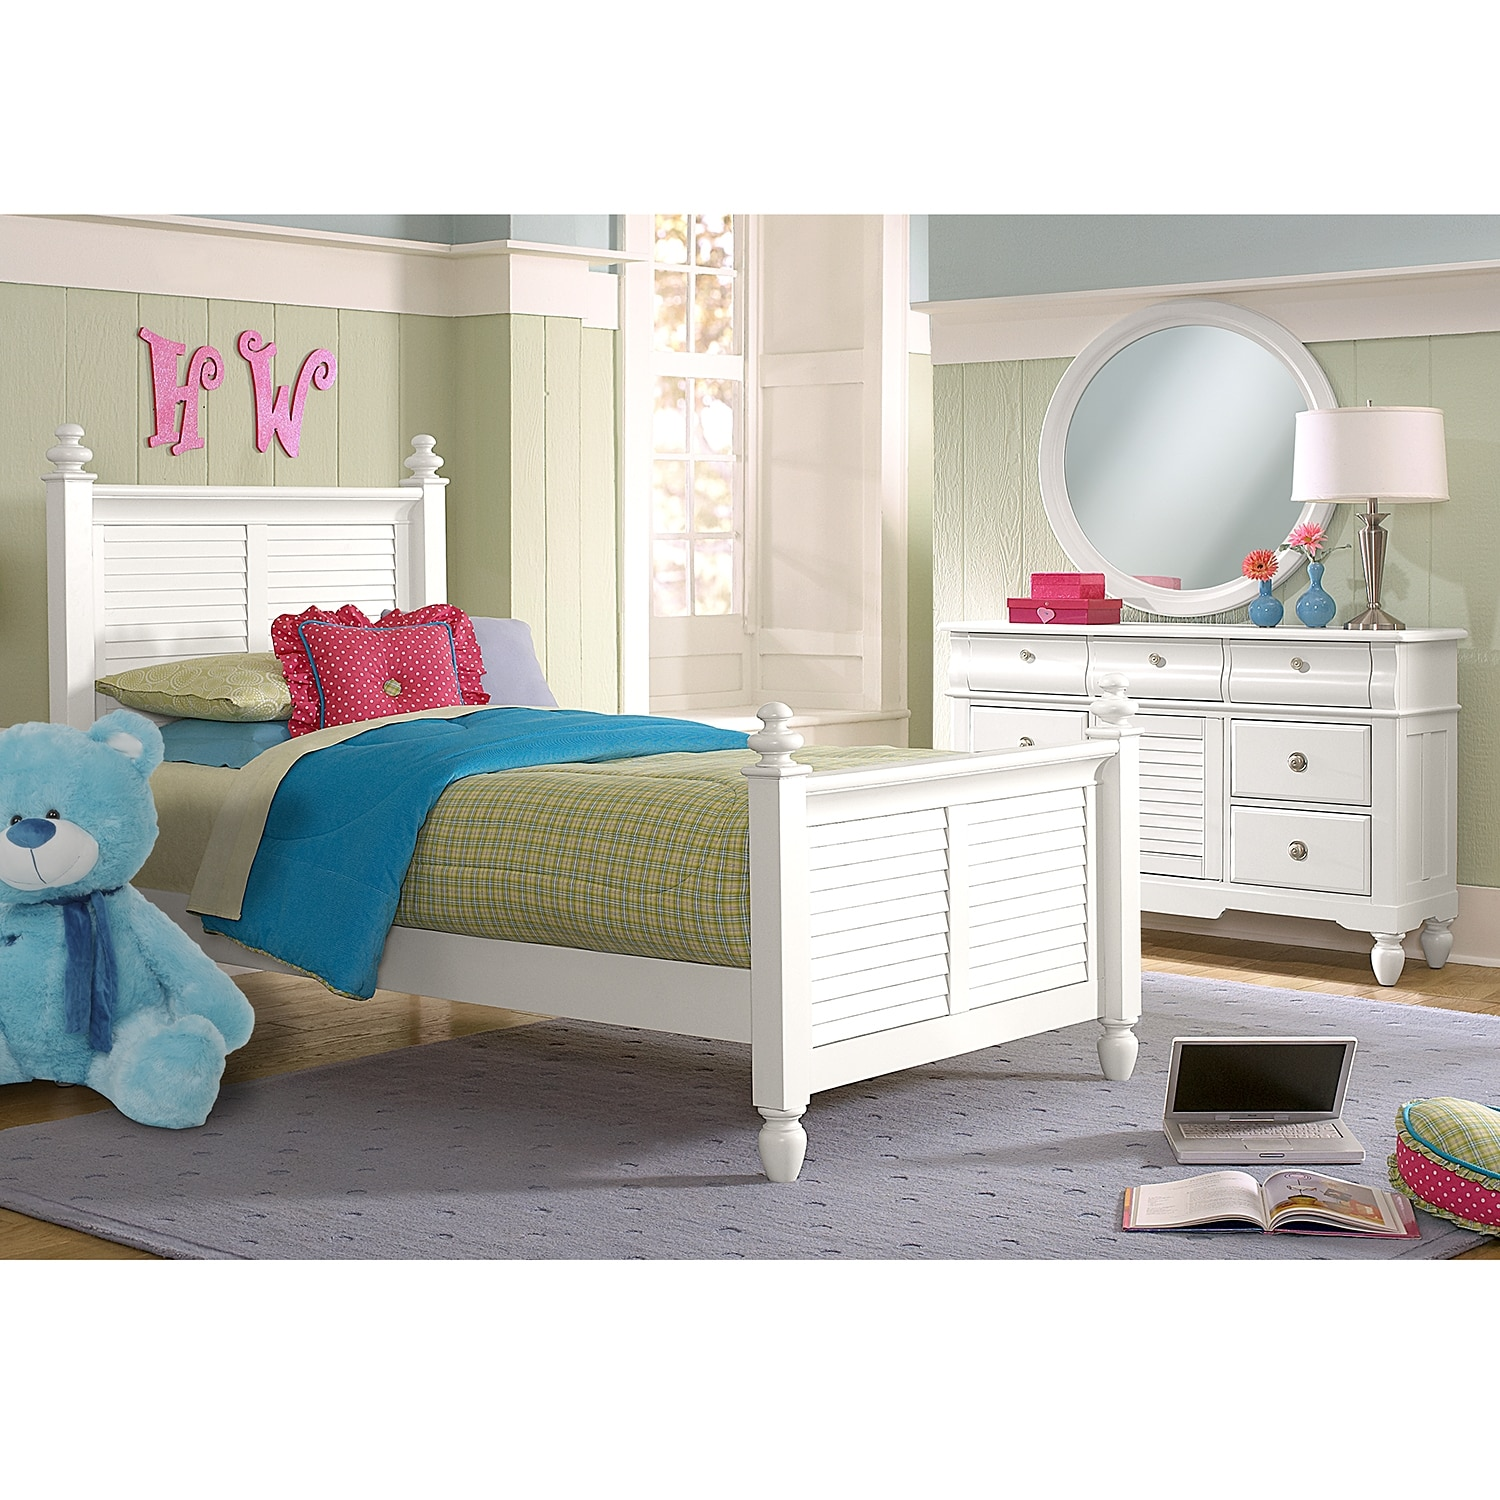 Seaside 5-Piece Twin Bedroom Set - White